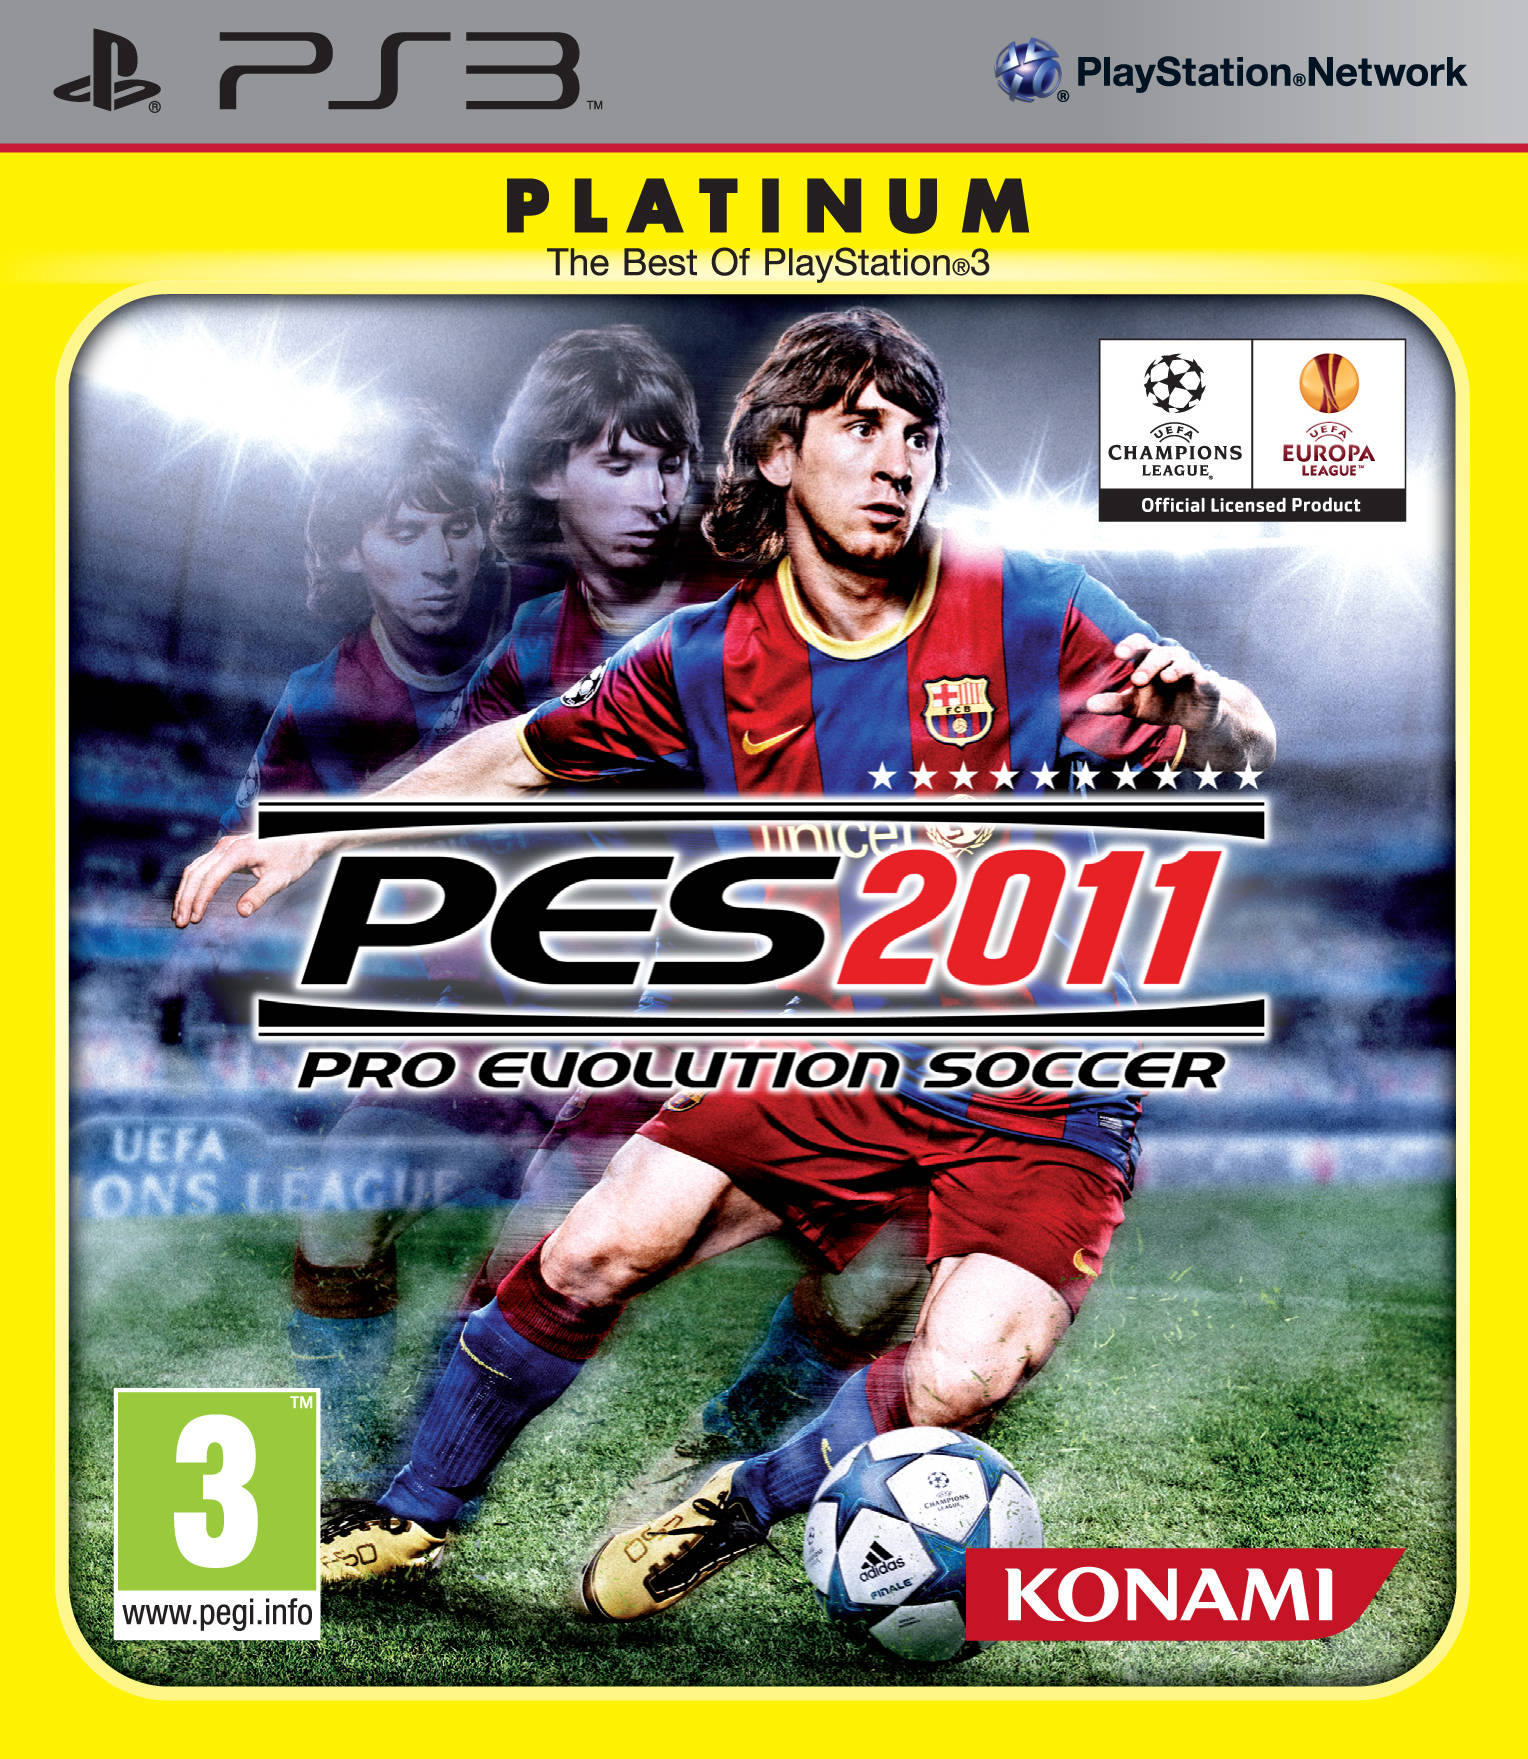 PES 2011 PS3 Platinum